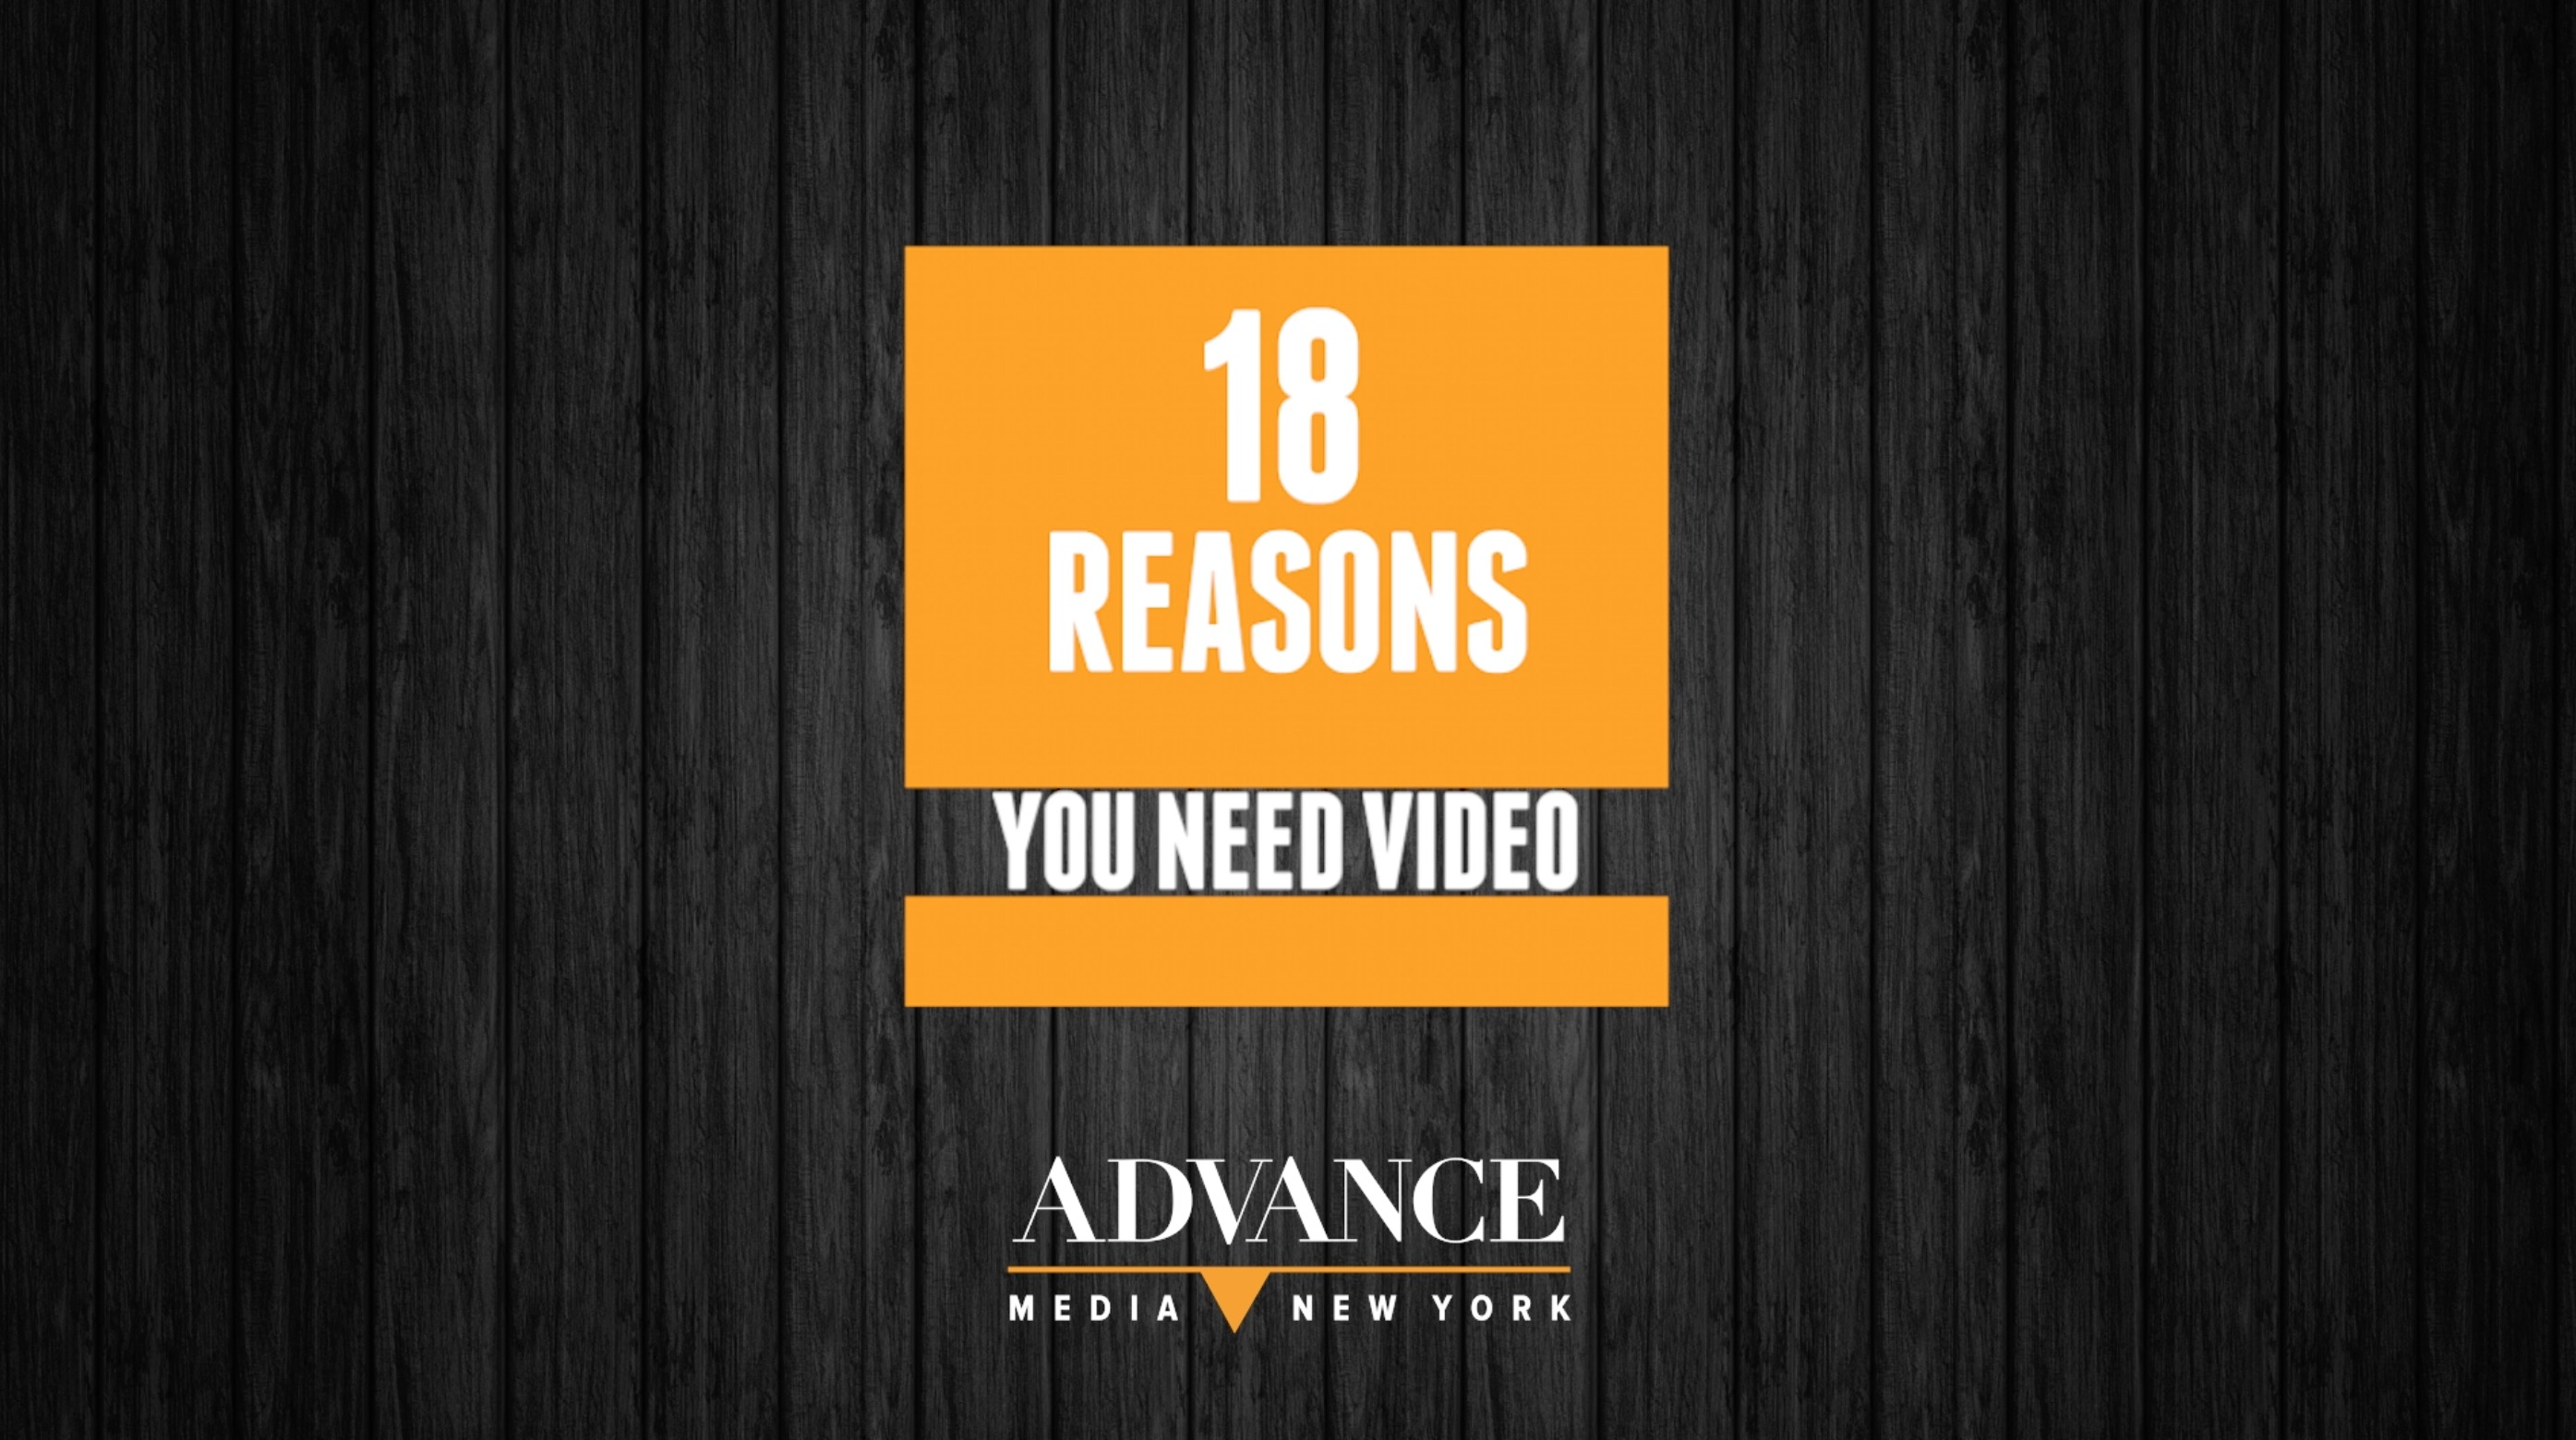 18 reasons you need video